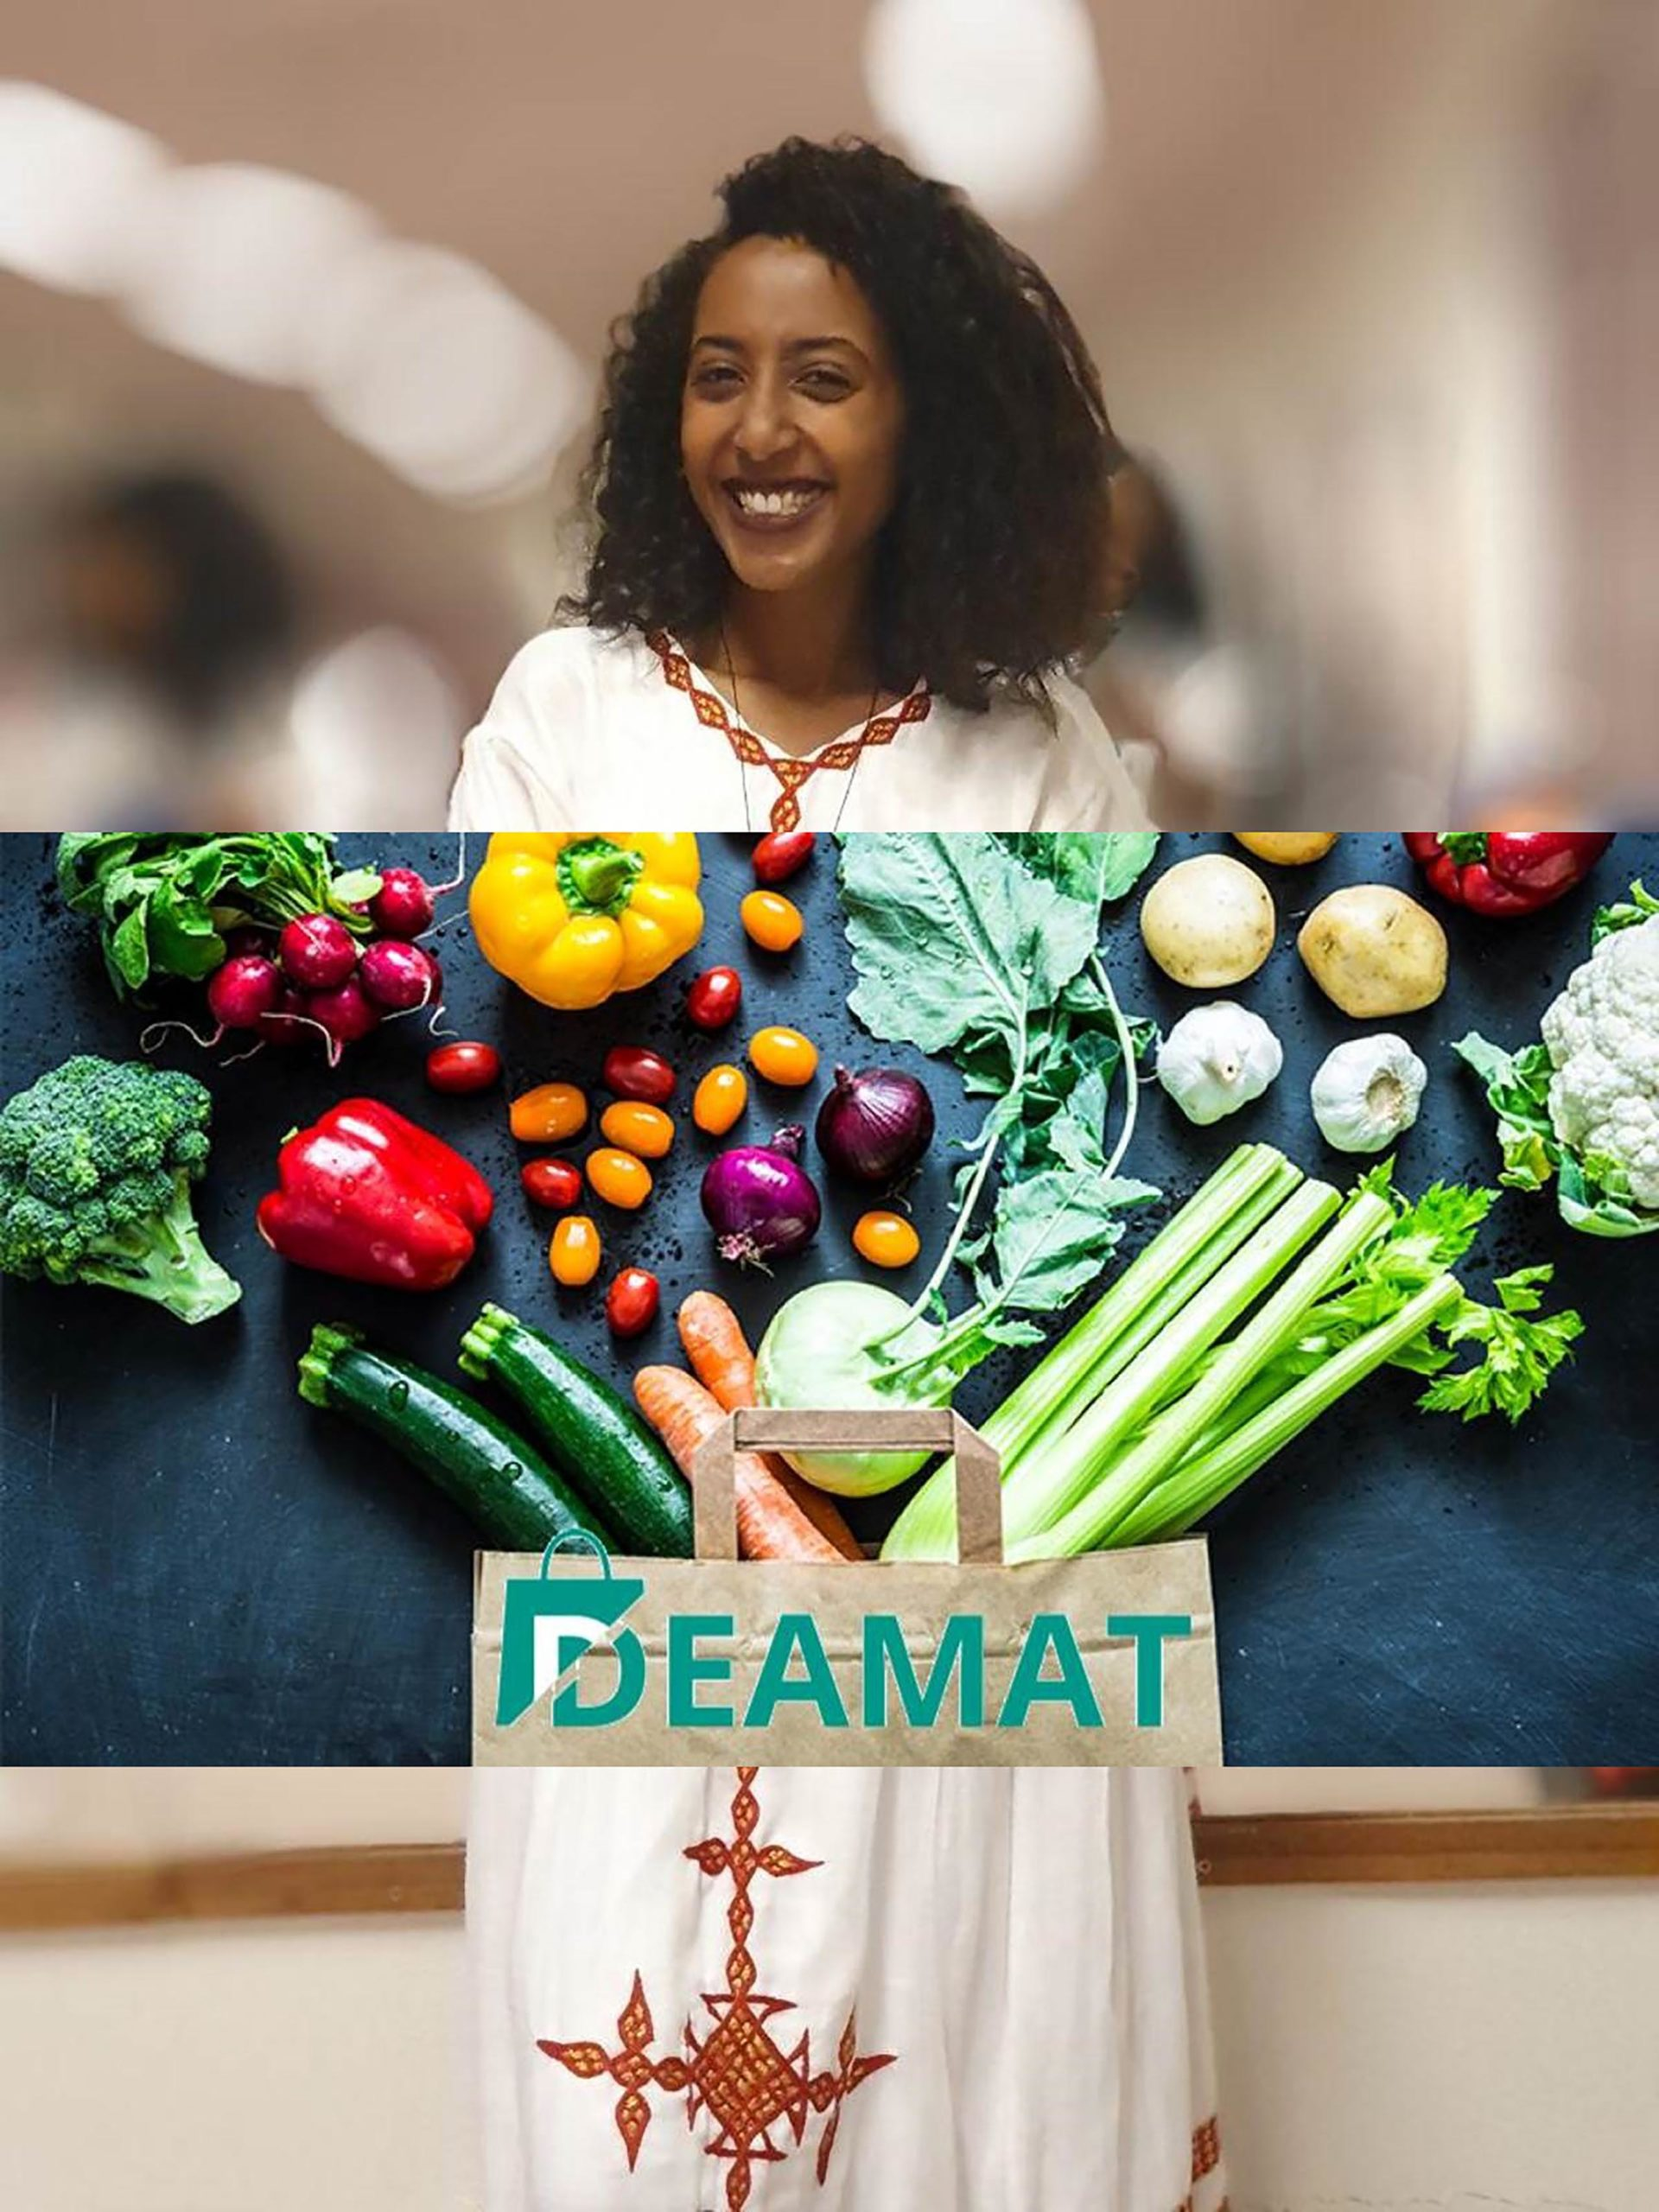 Kisanet Haile Molla of Deamat in traditional Ethiopian dress with a photo of vegetables arranged around a Deamat shopping bag